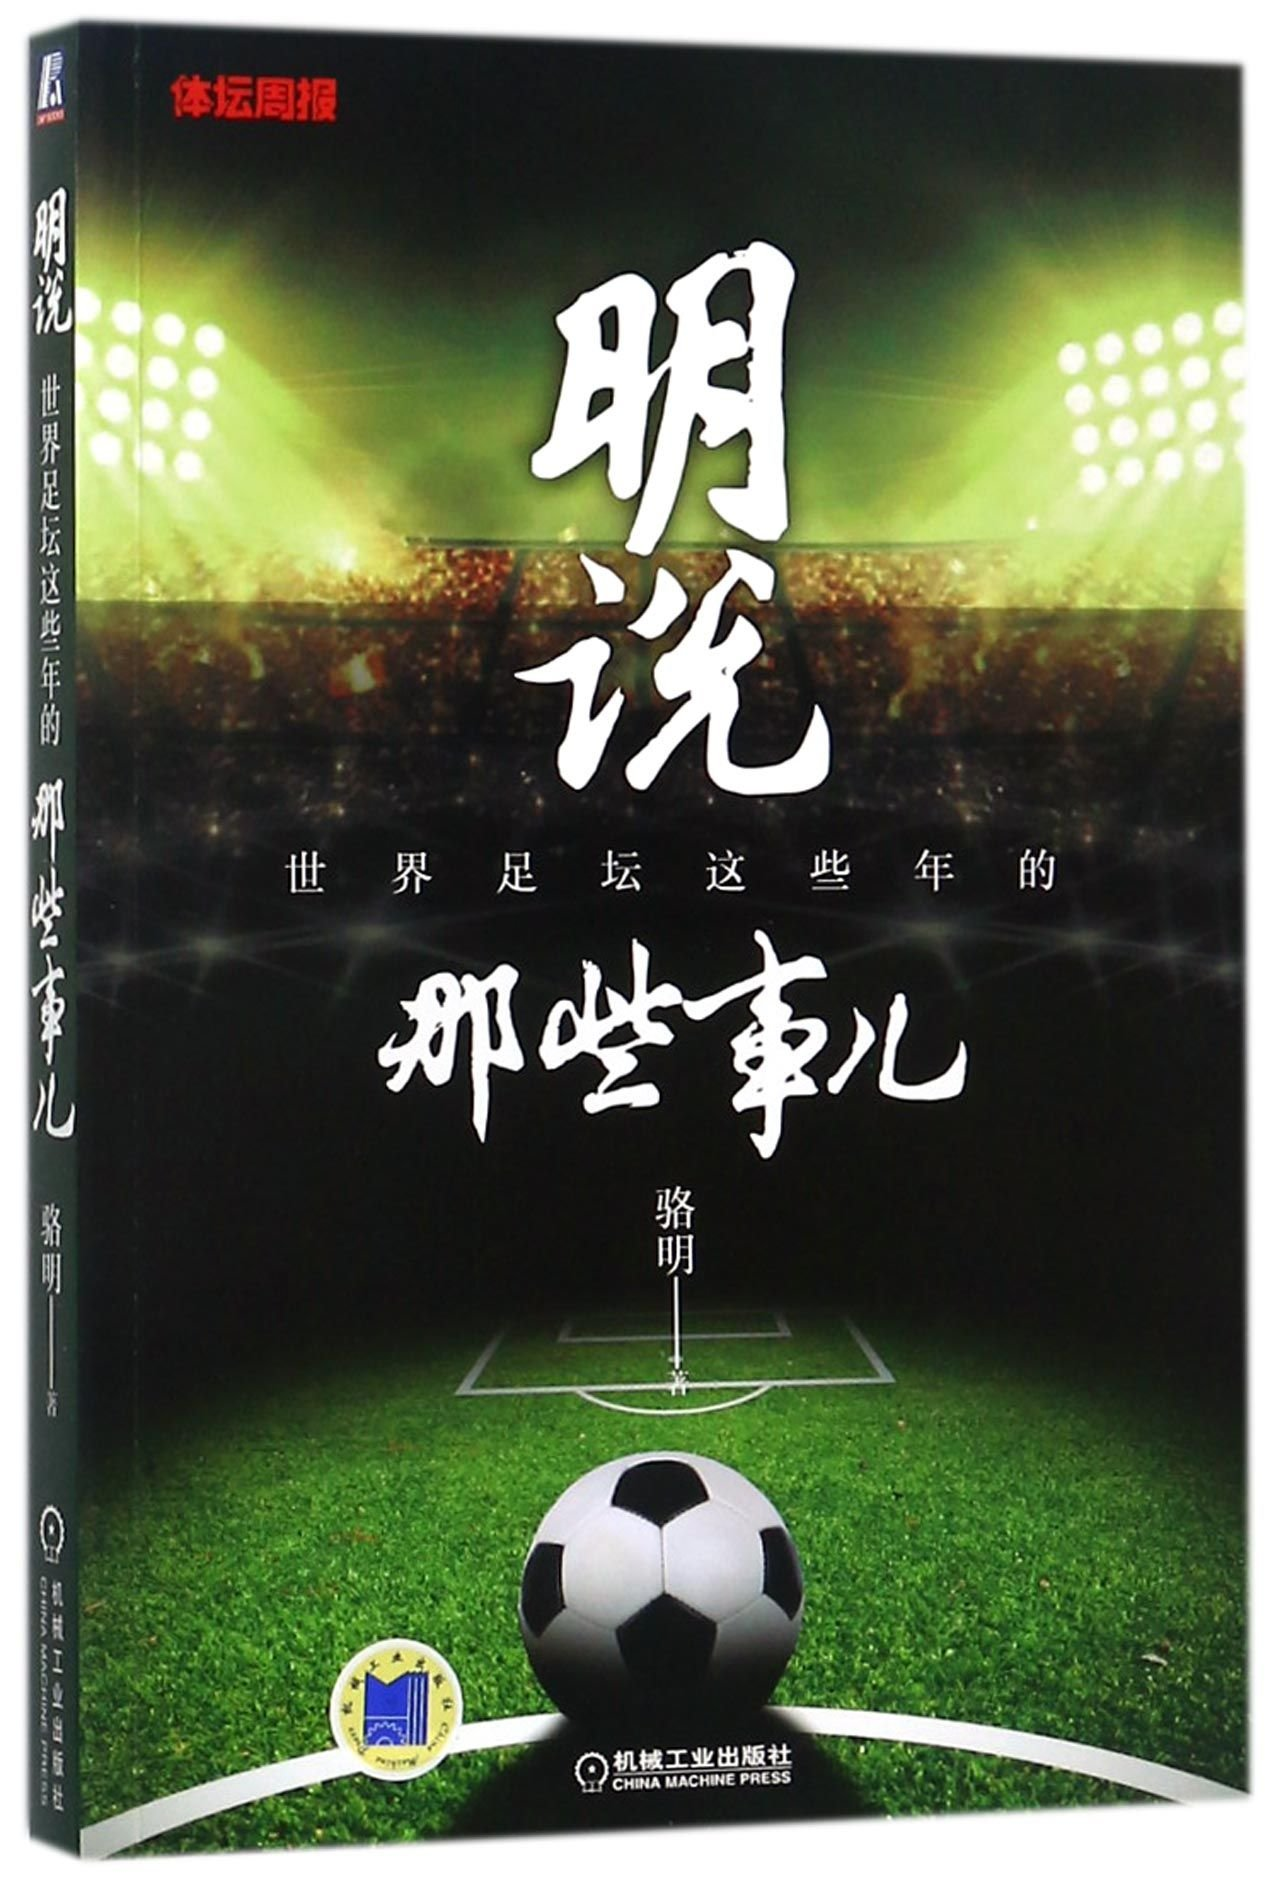 Read Online The Past in the World Football Circle (Chinese Edition) pdf